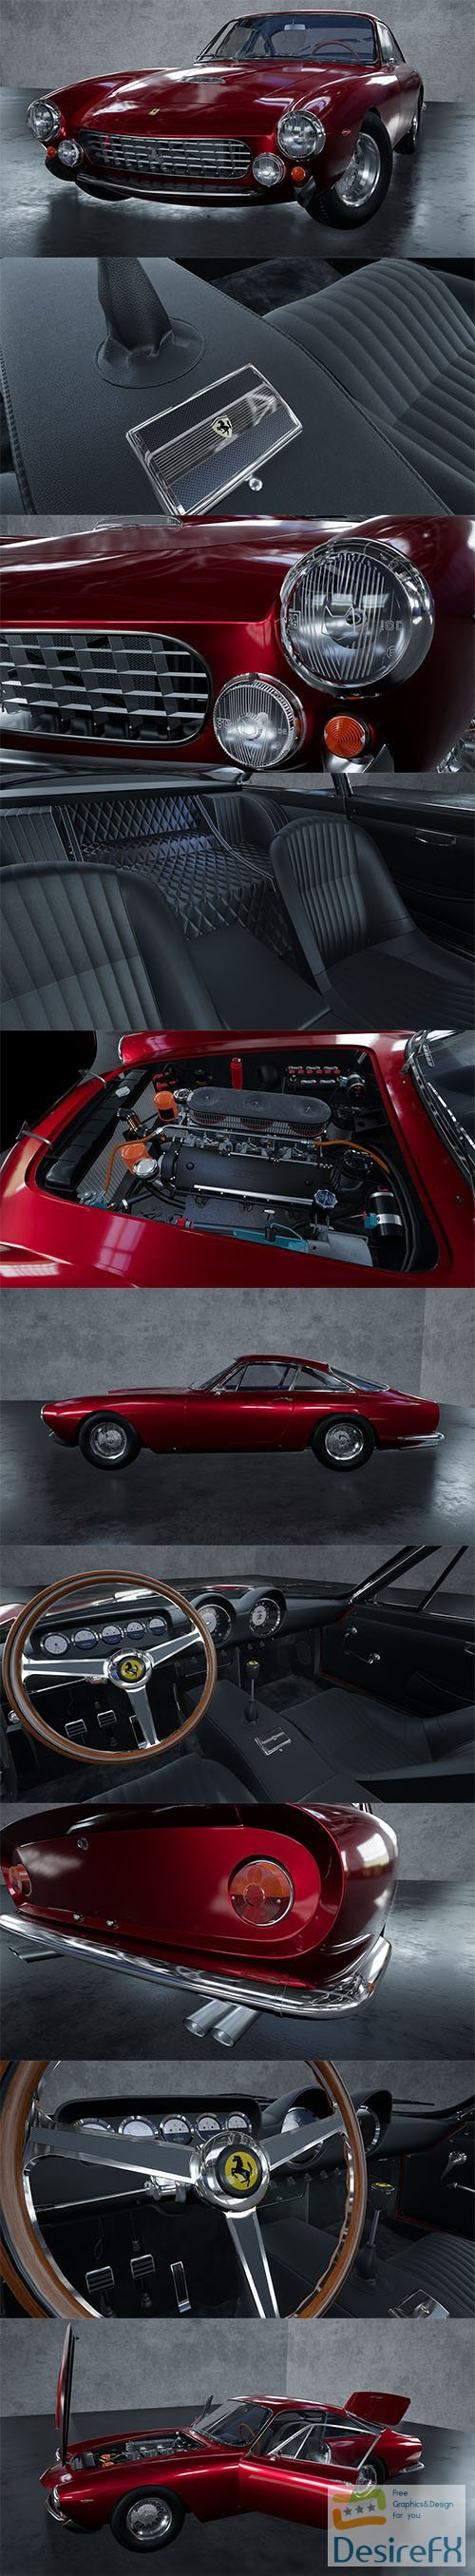 3d-models - Ferrari 250 GT Berlinetta Lusso 1962 3D Model